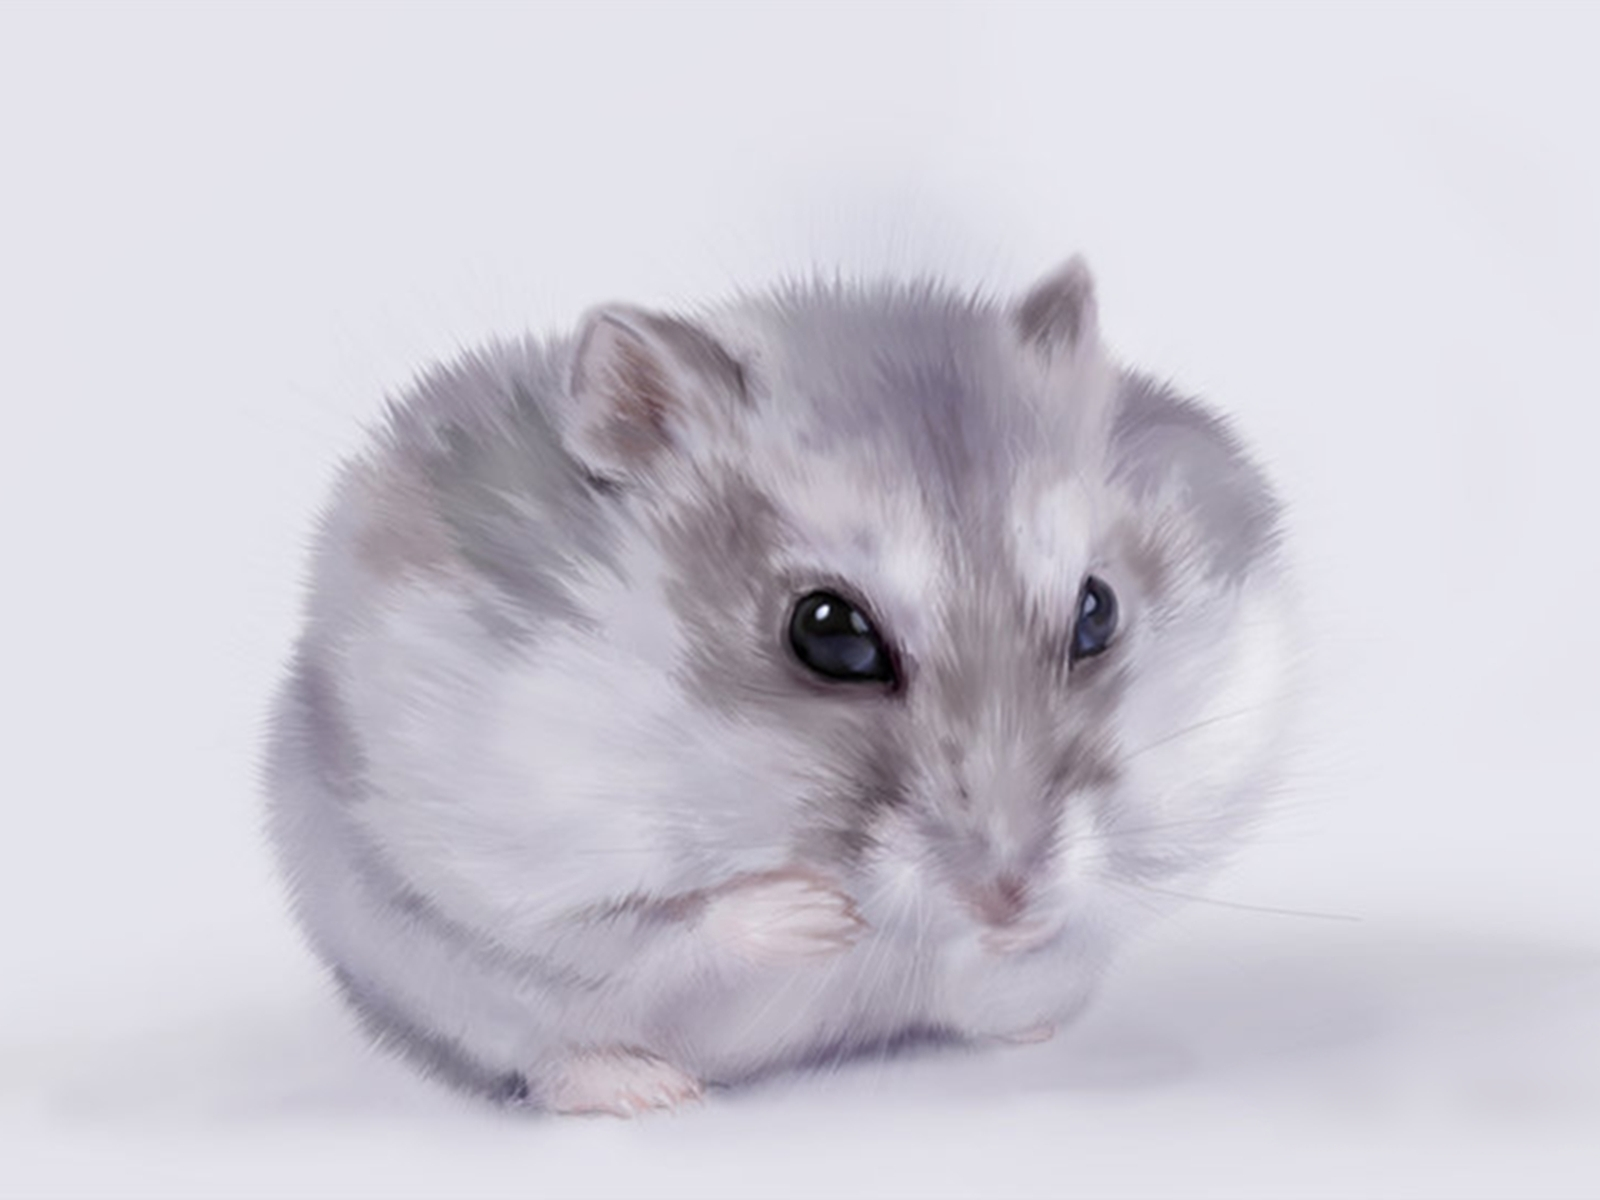 hamster wallpapers hd